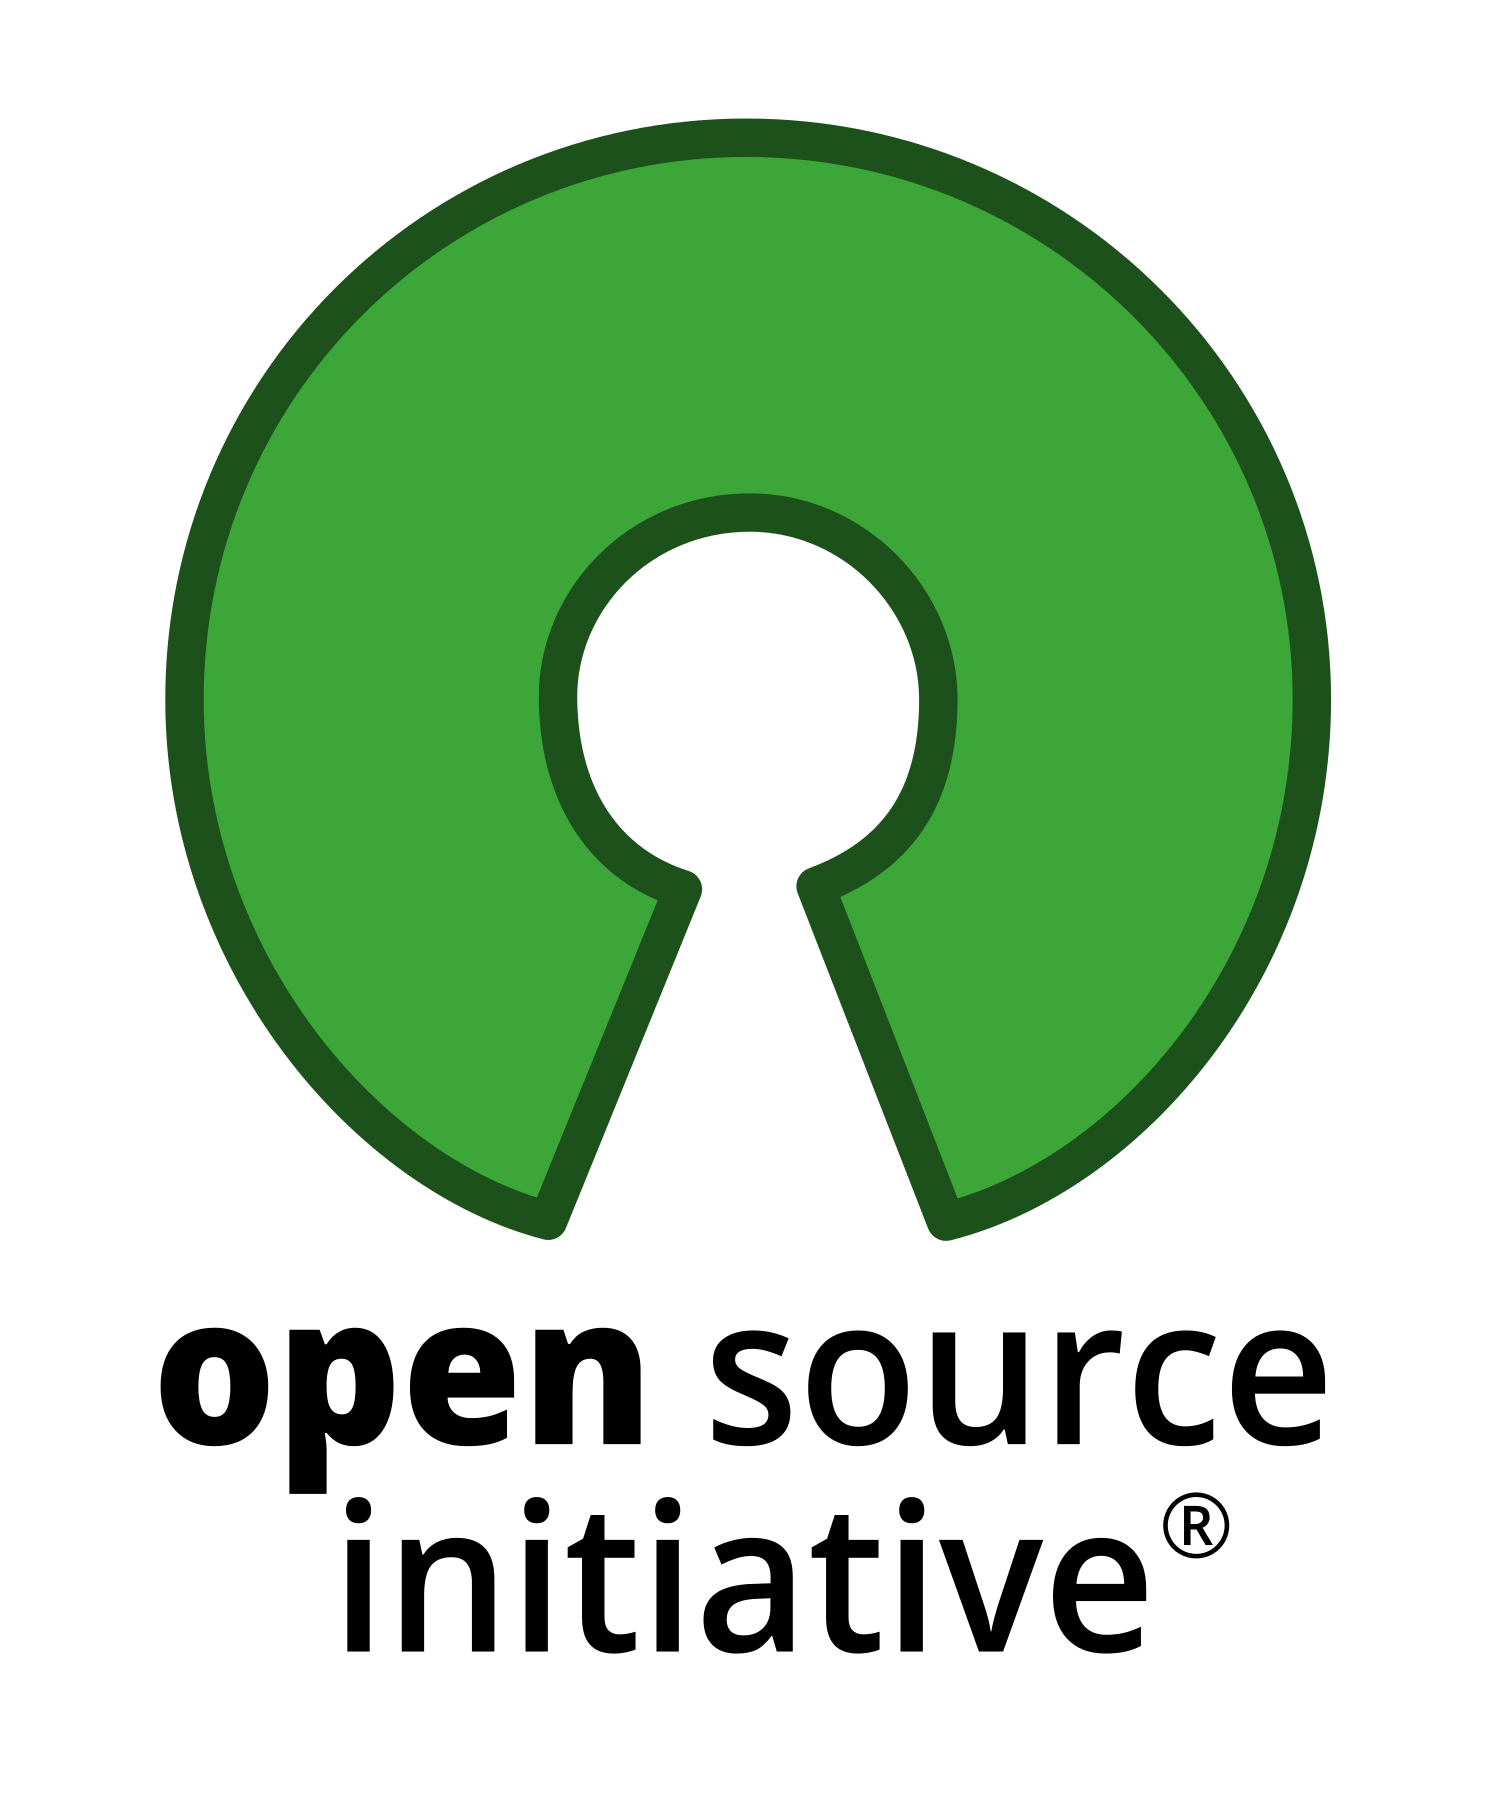 Open Source Initiative